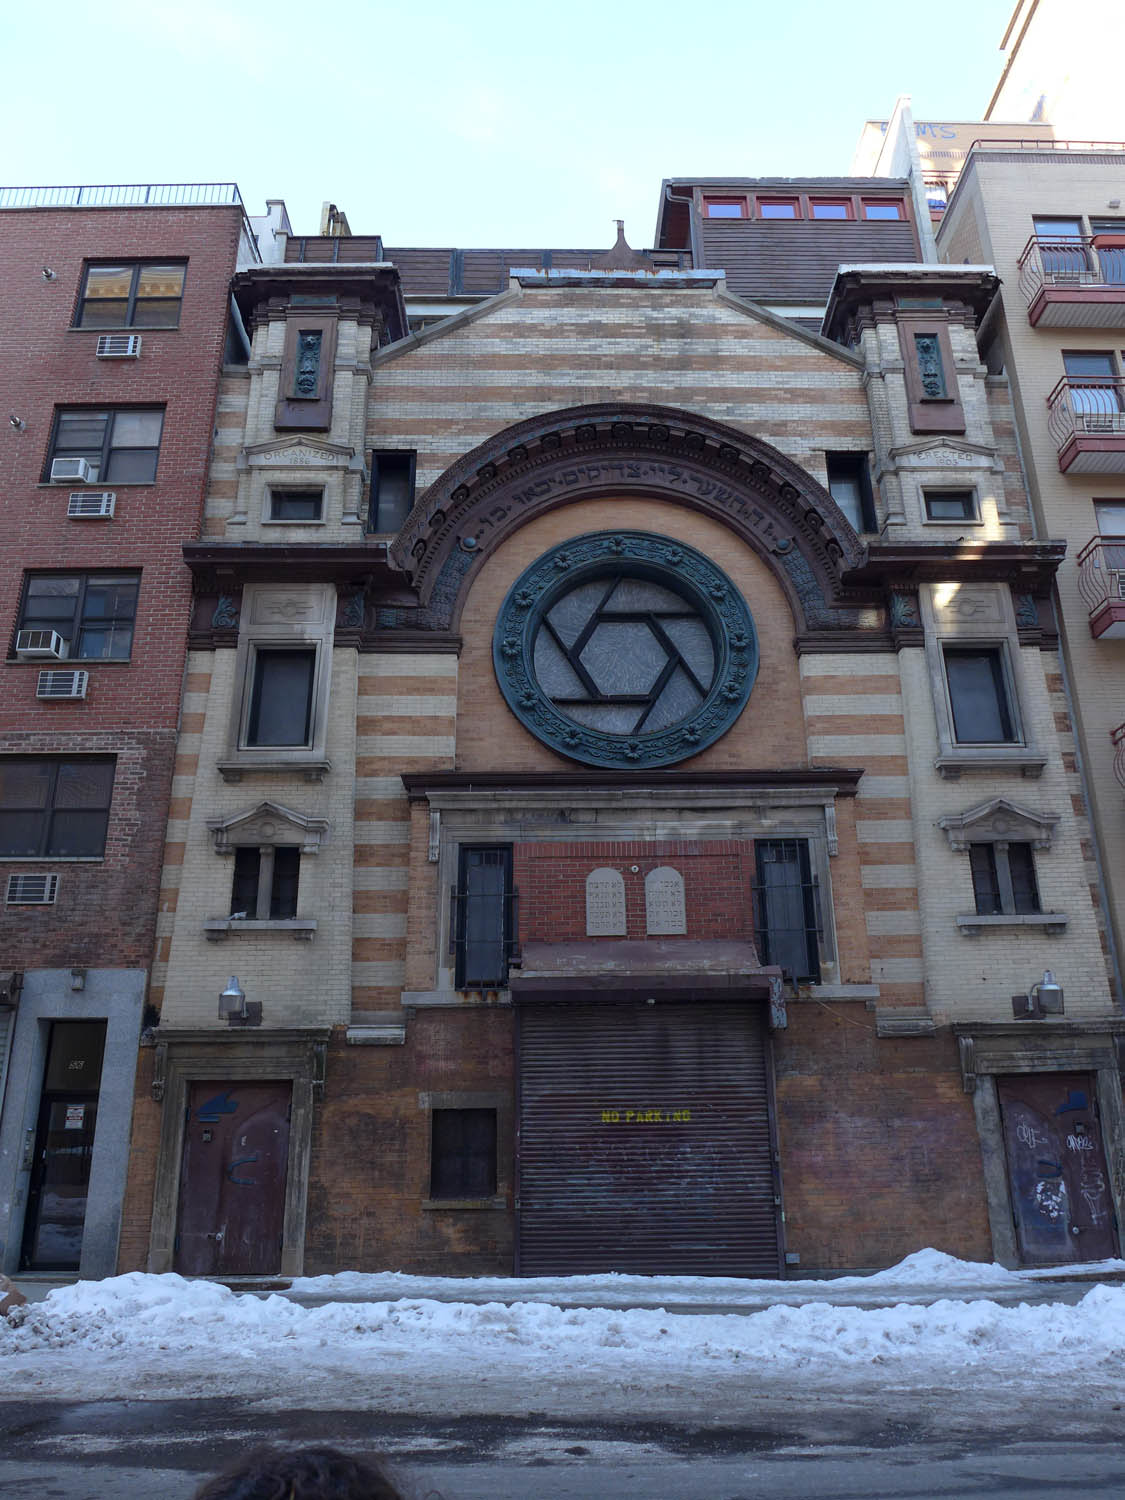 And another synagogue now owned by a photographer